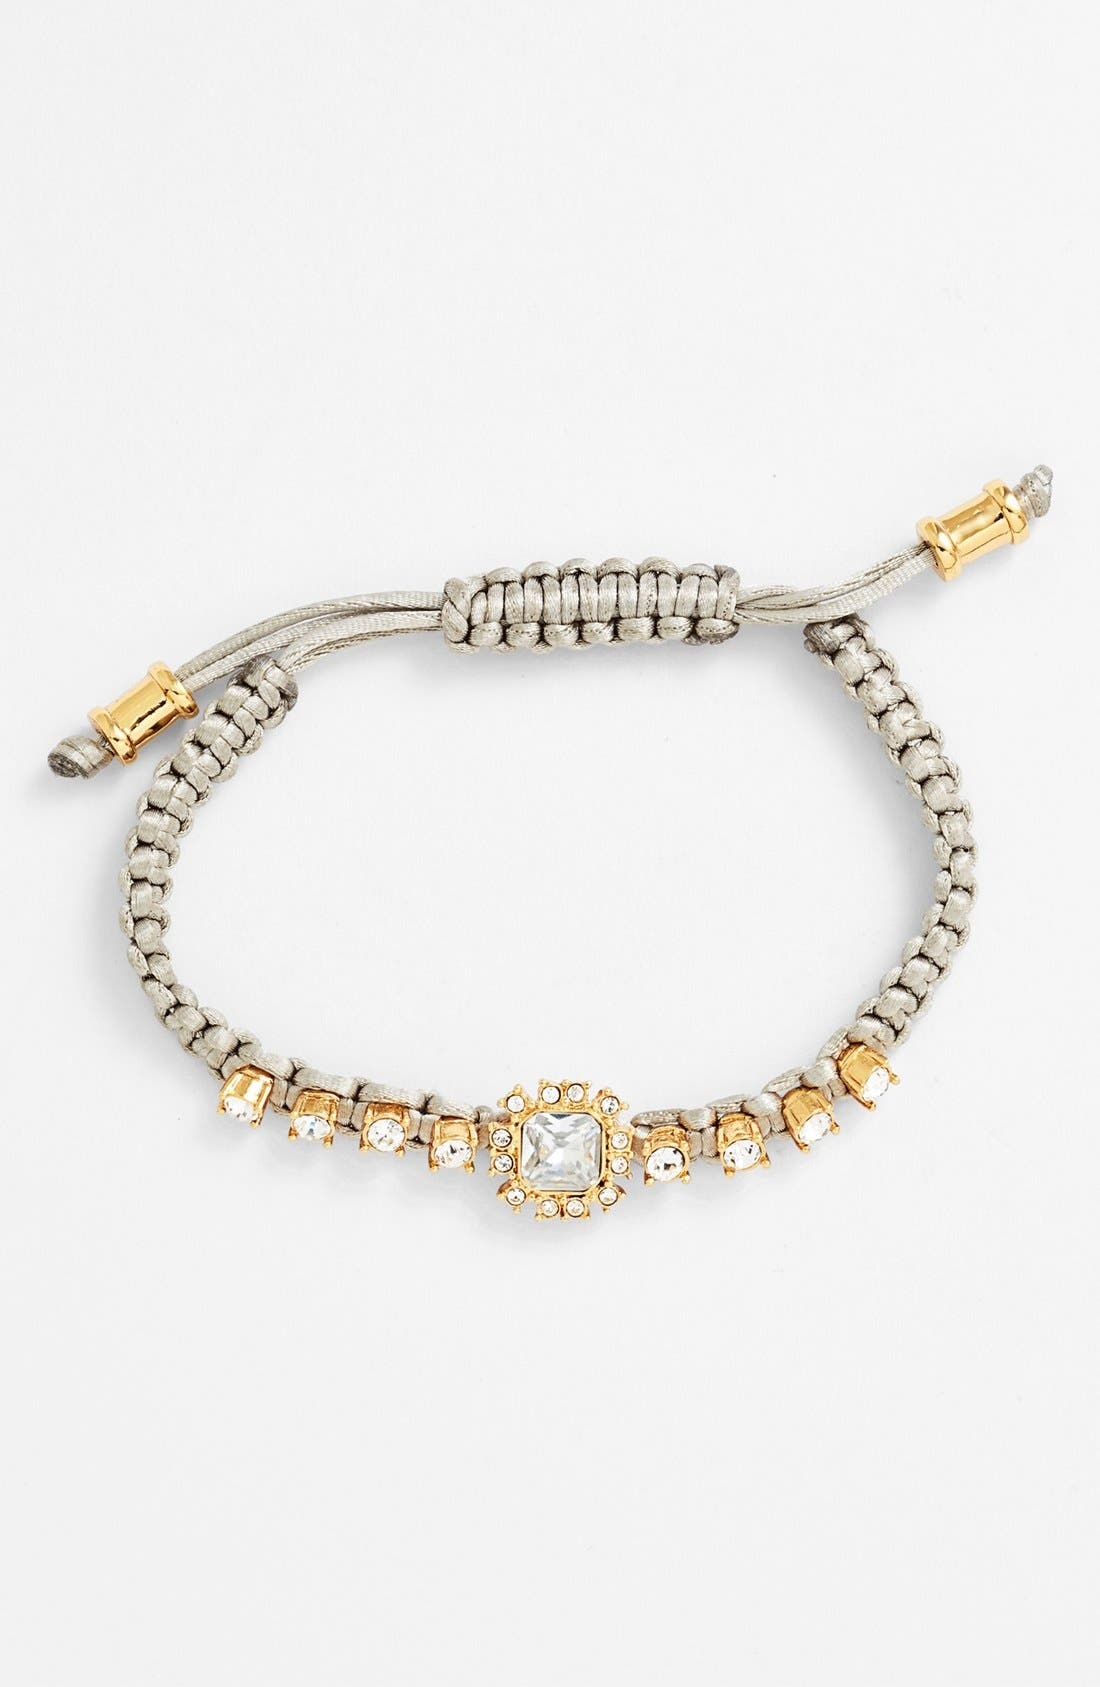 Alternate Image 1 Selected - Vince Camuto 'Study' Macramé Bracelet